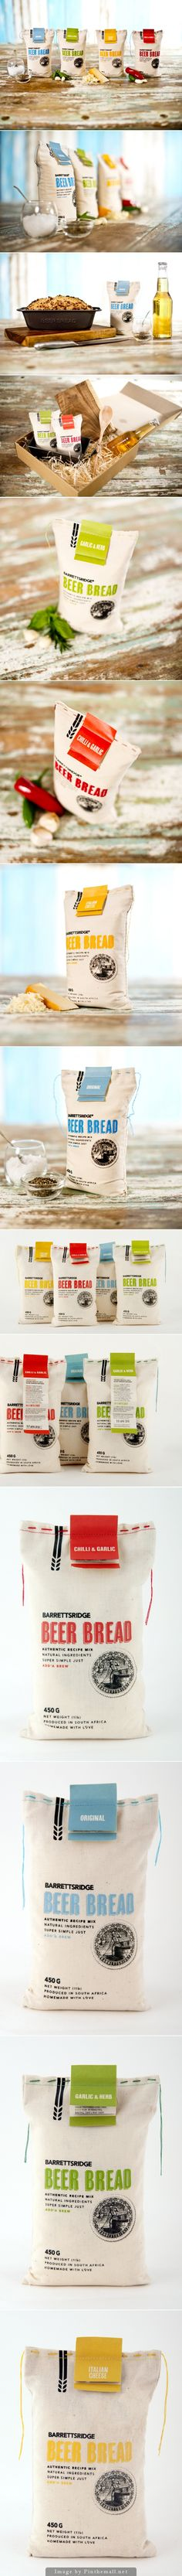 BarrettsRidge Beer Bread // Disseny packaging net i atractiu. Combinació de materials i plegat en l'etiqueta.